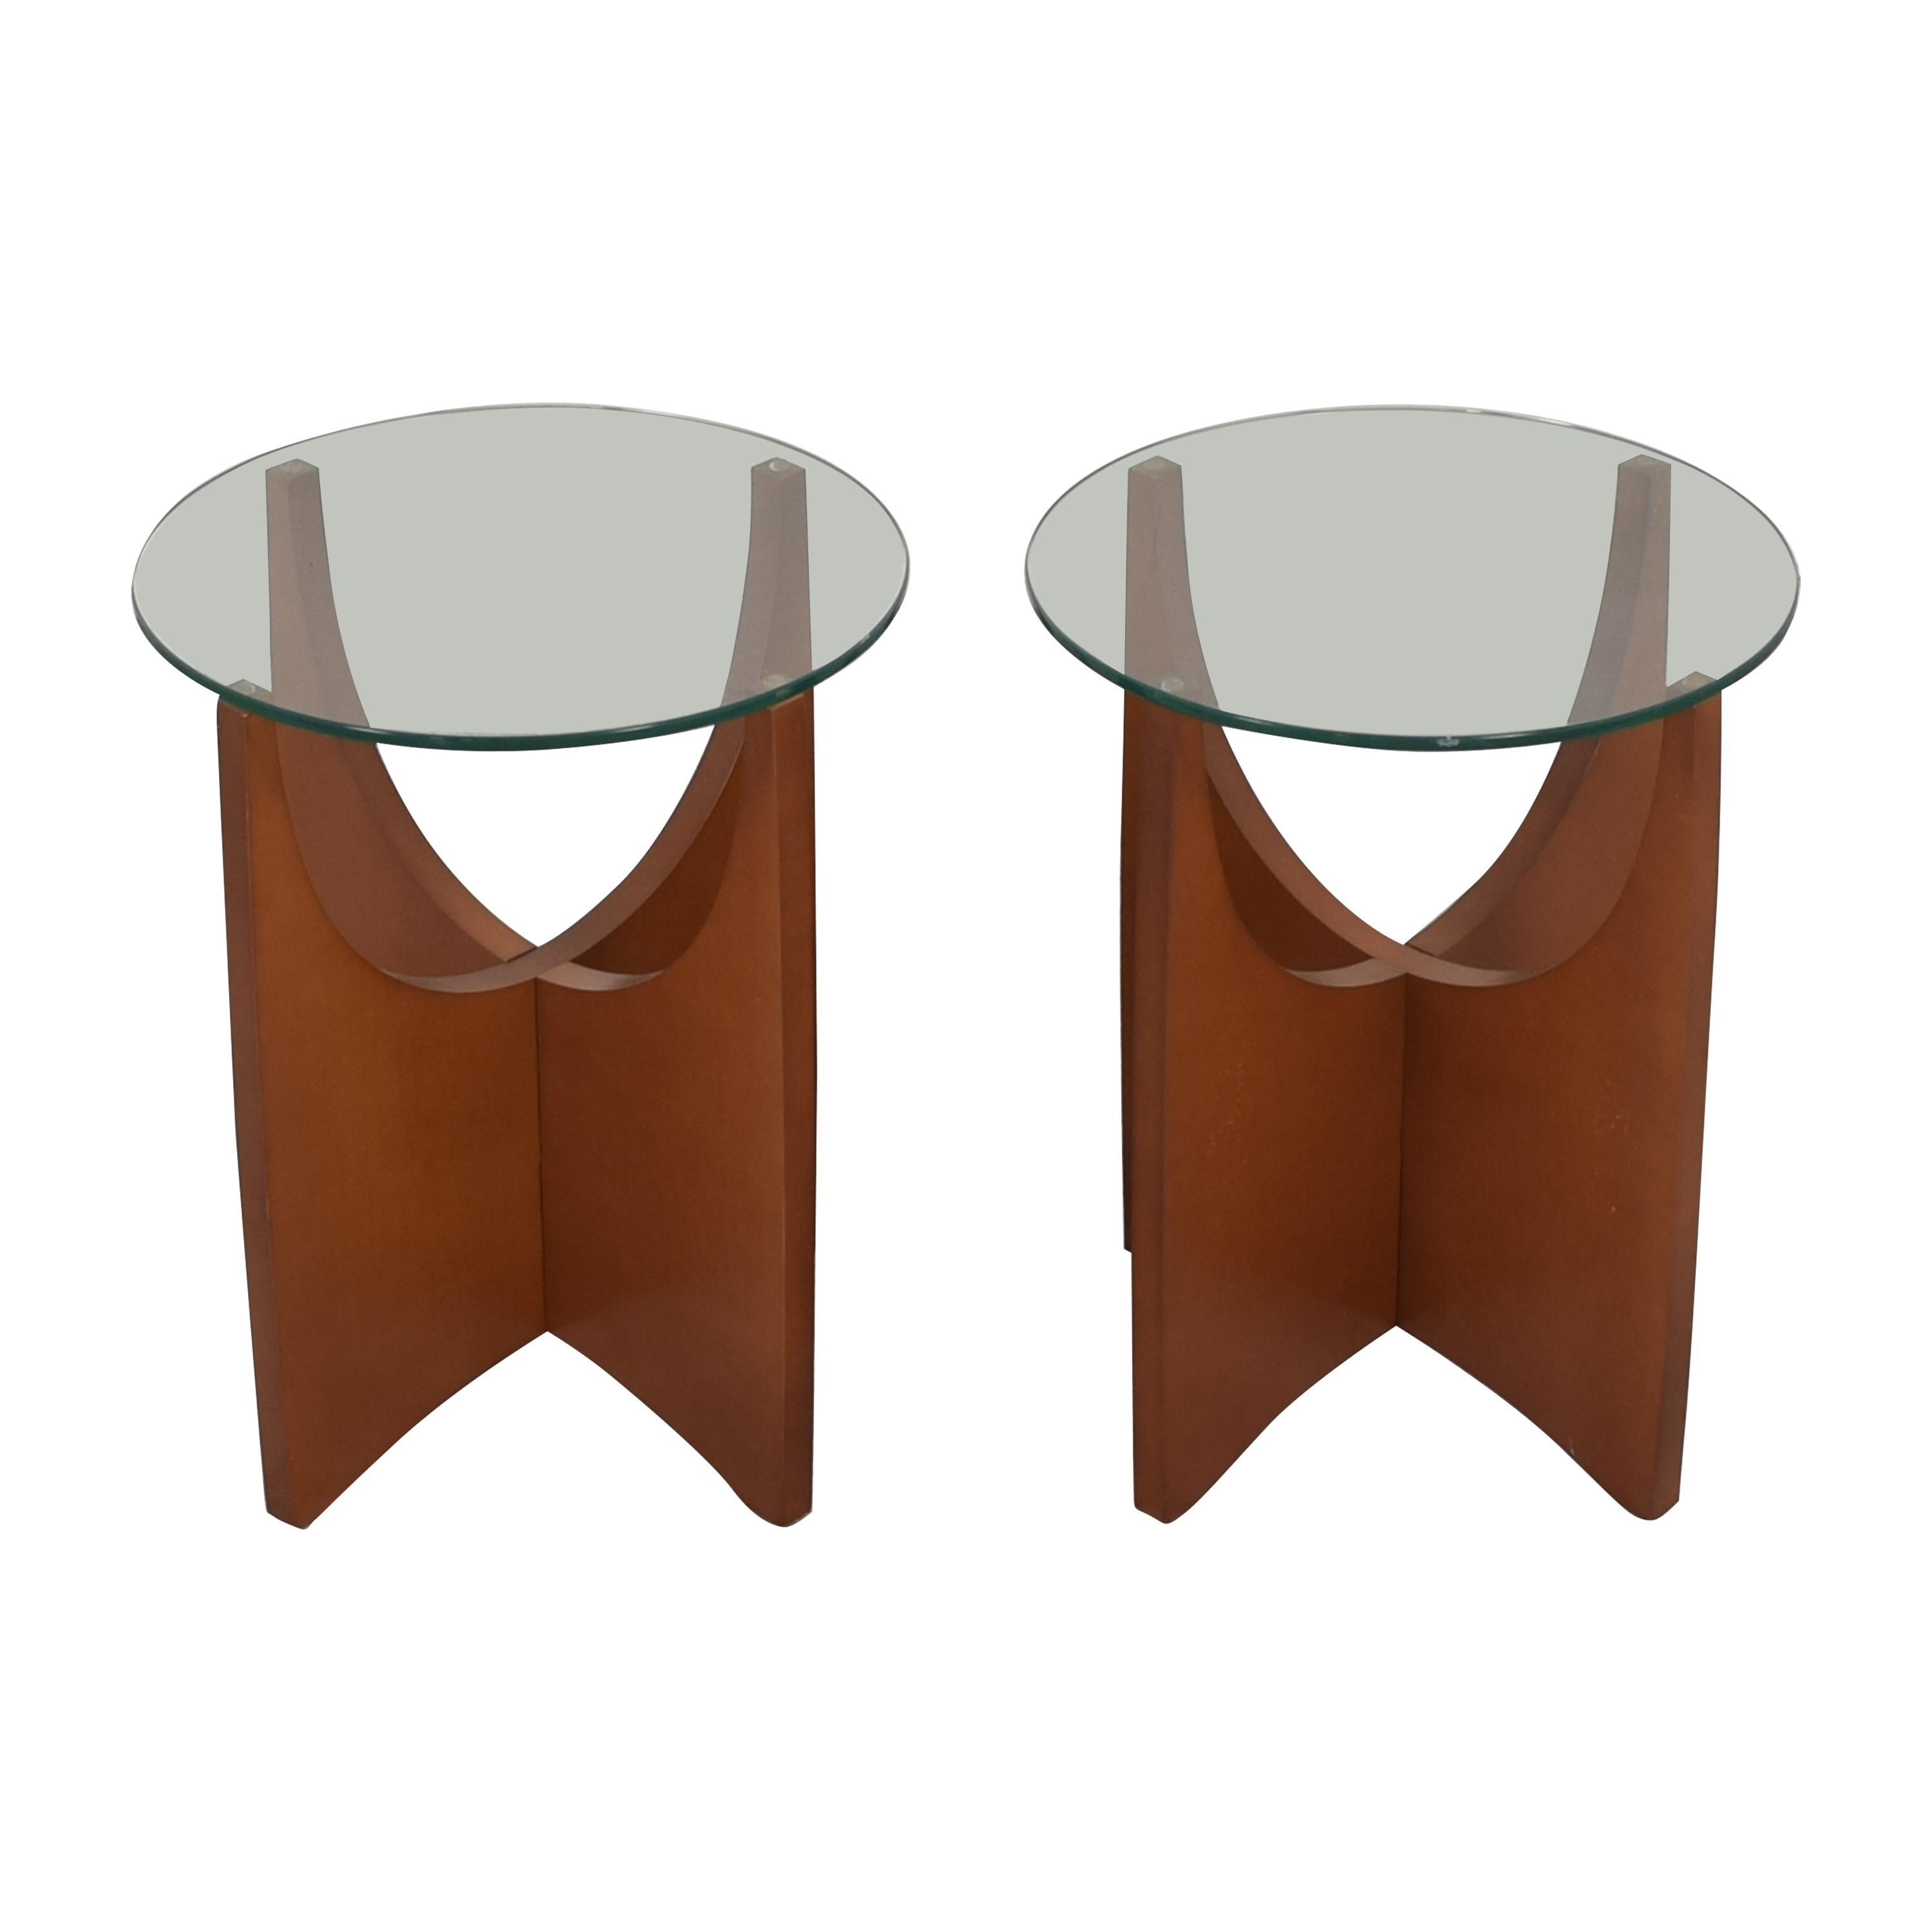 Steelcase Steelcase Turnstone Alight End Tables second hand